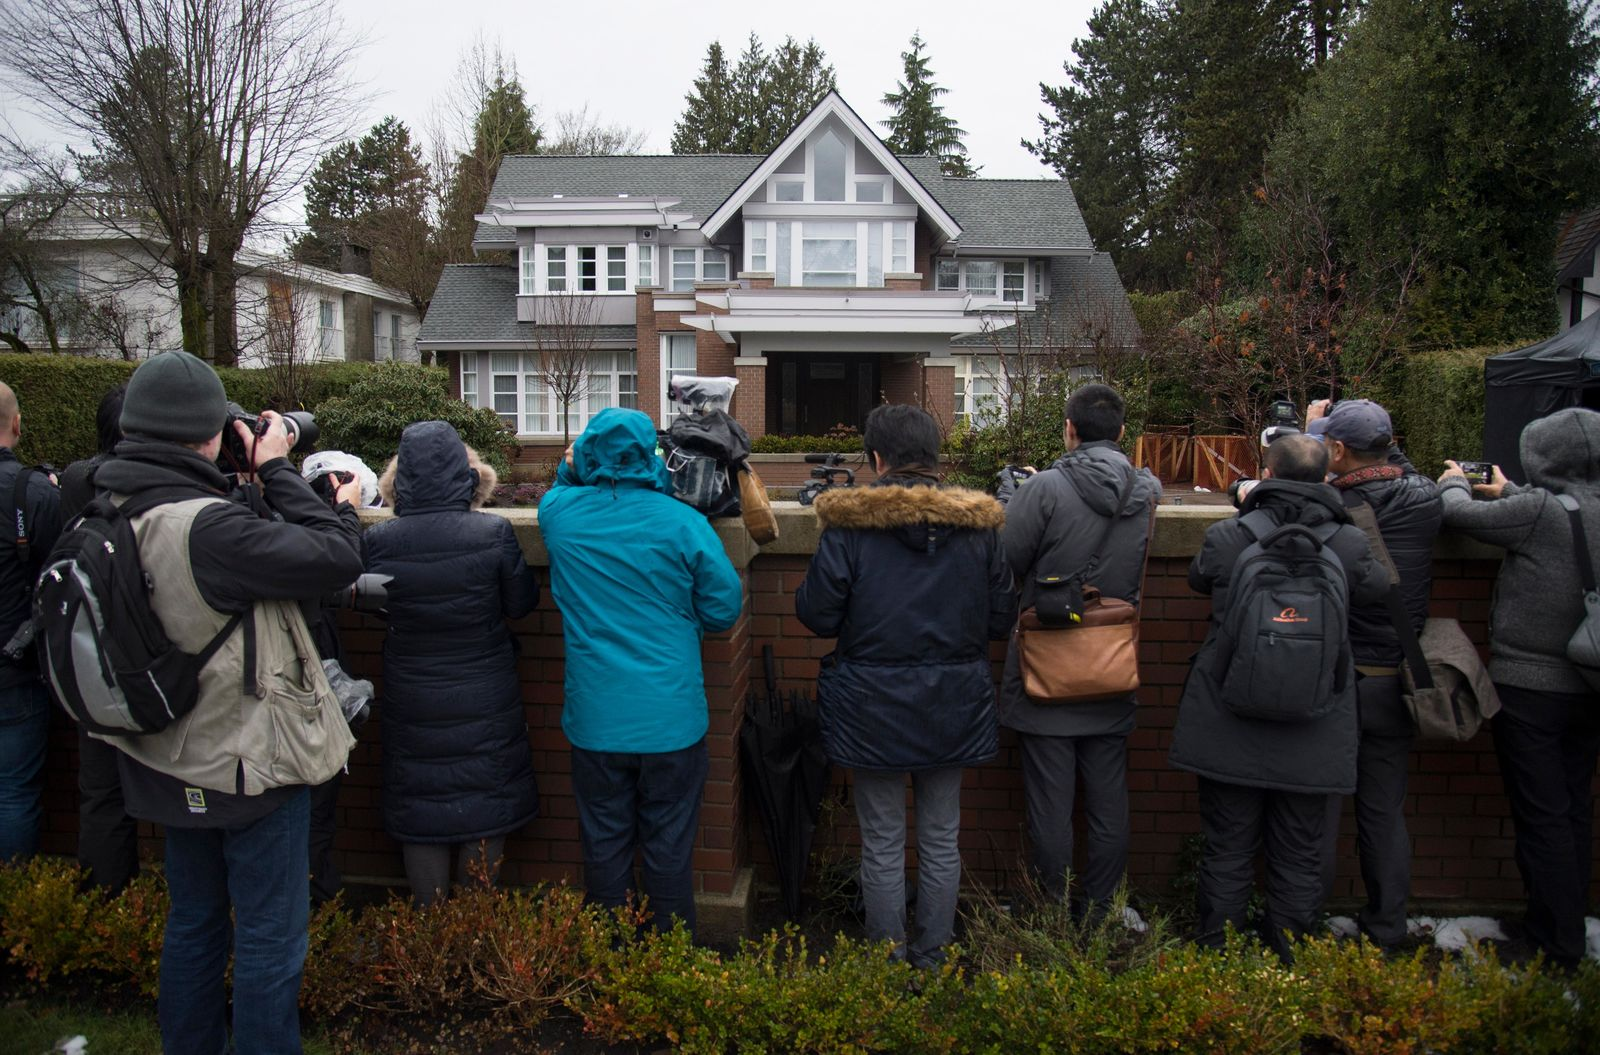 Media wait for Meng Wanzhou, chief financial officer of Huawei, to leave her home to attend a hearing in Vancouver, Monday, January, 20, 2020. (THE CANADIAN PRESS/Jonathan Hayward/The Canadian Press via AP)